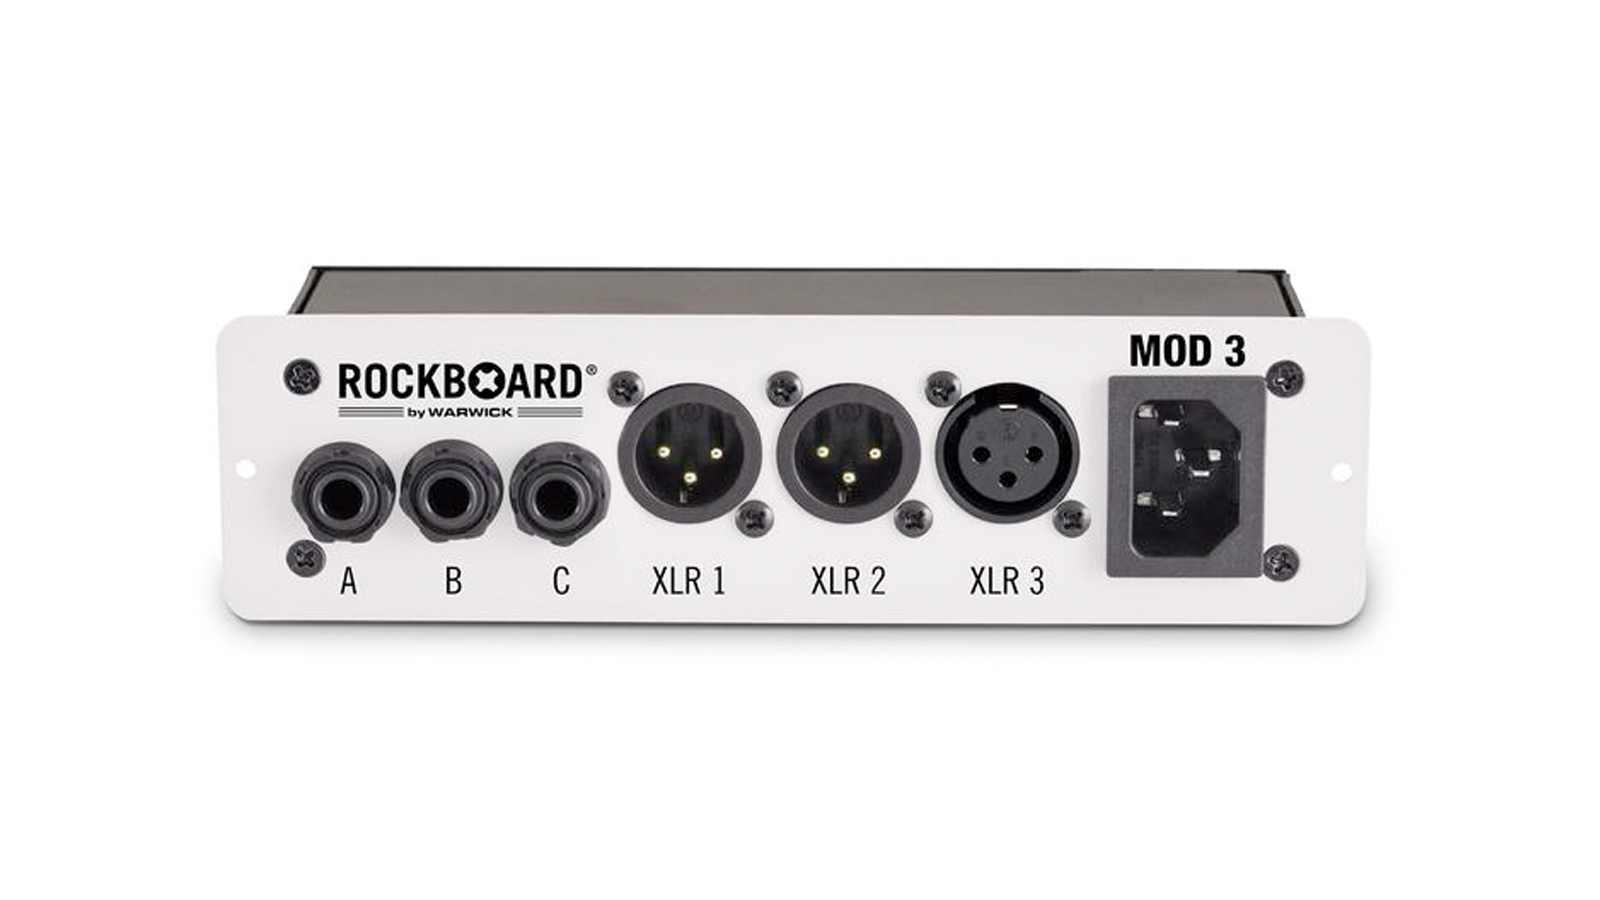 RockBoard MOD 3 All-in-one Patchbay